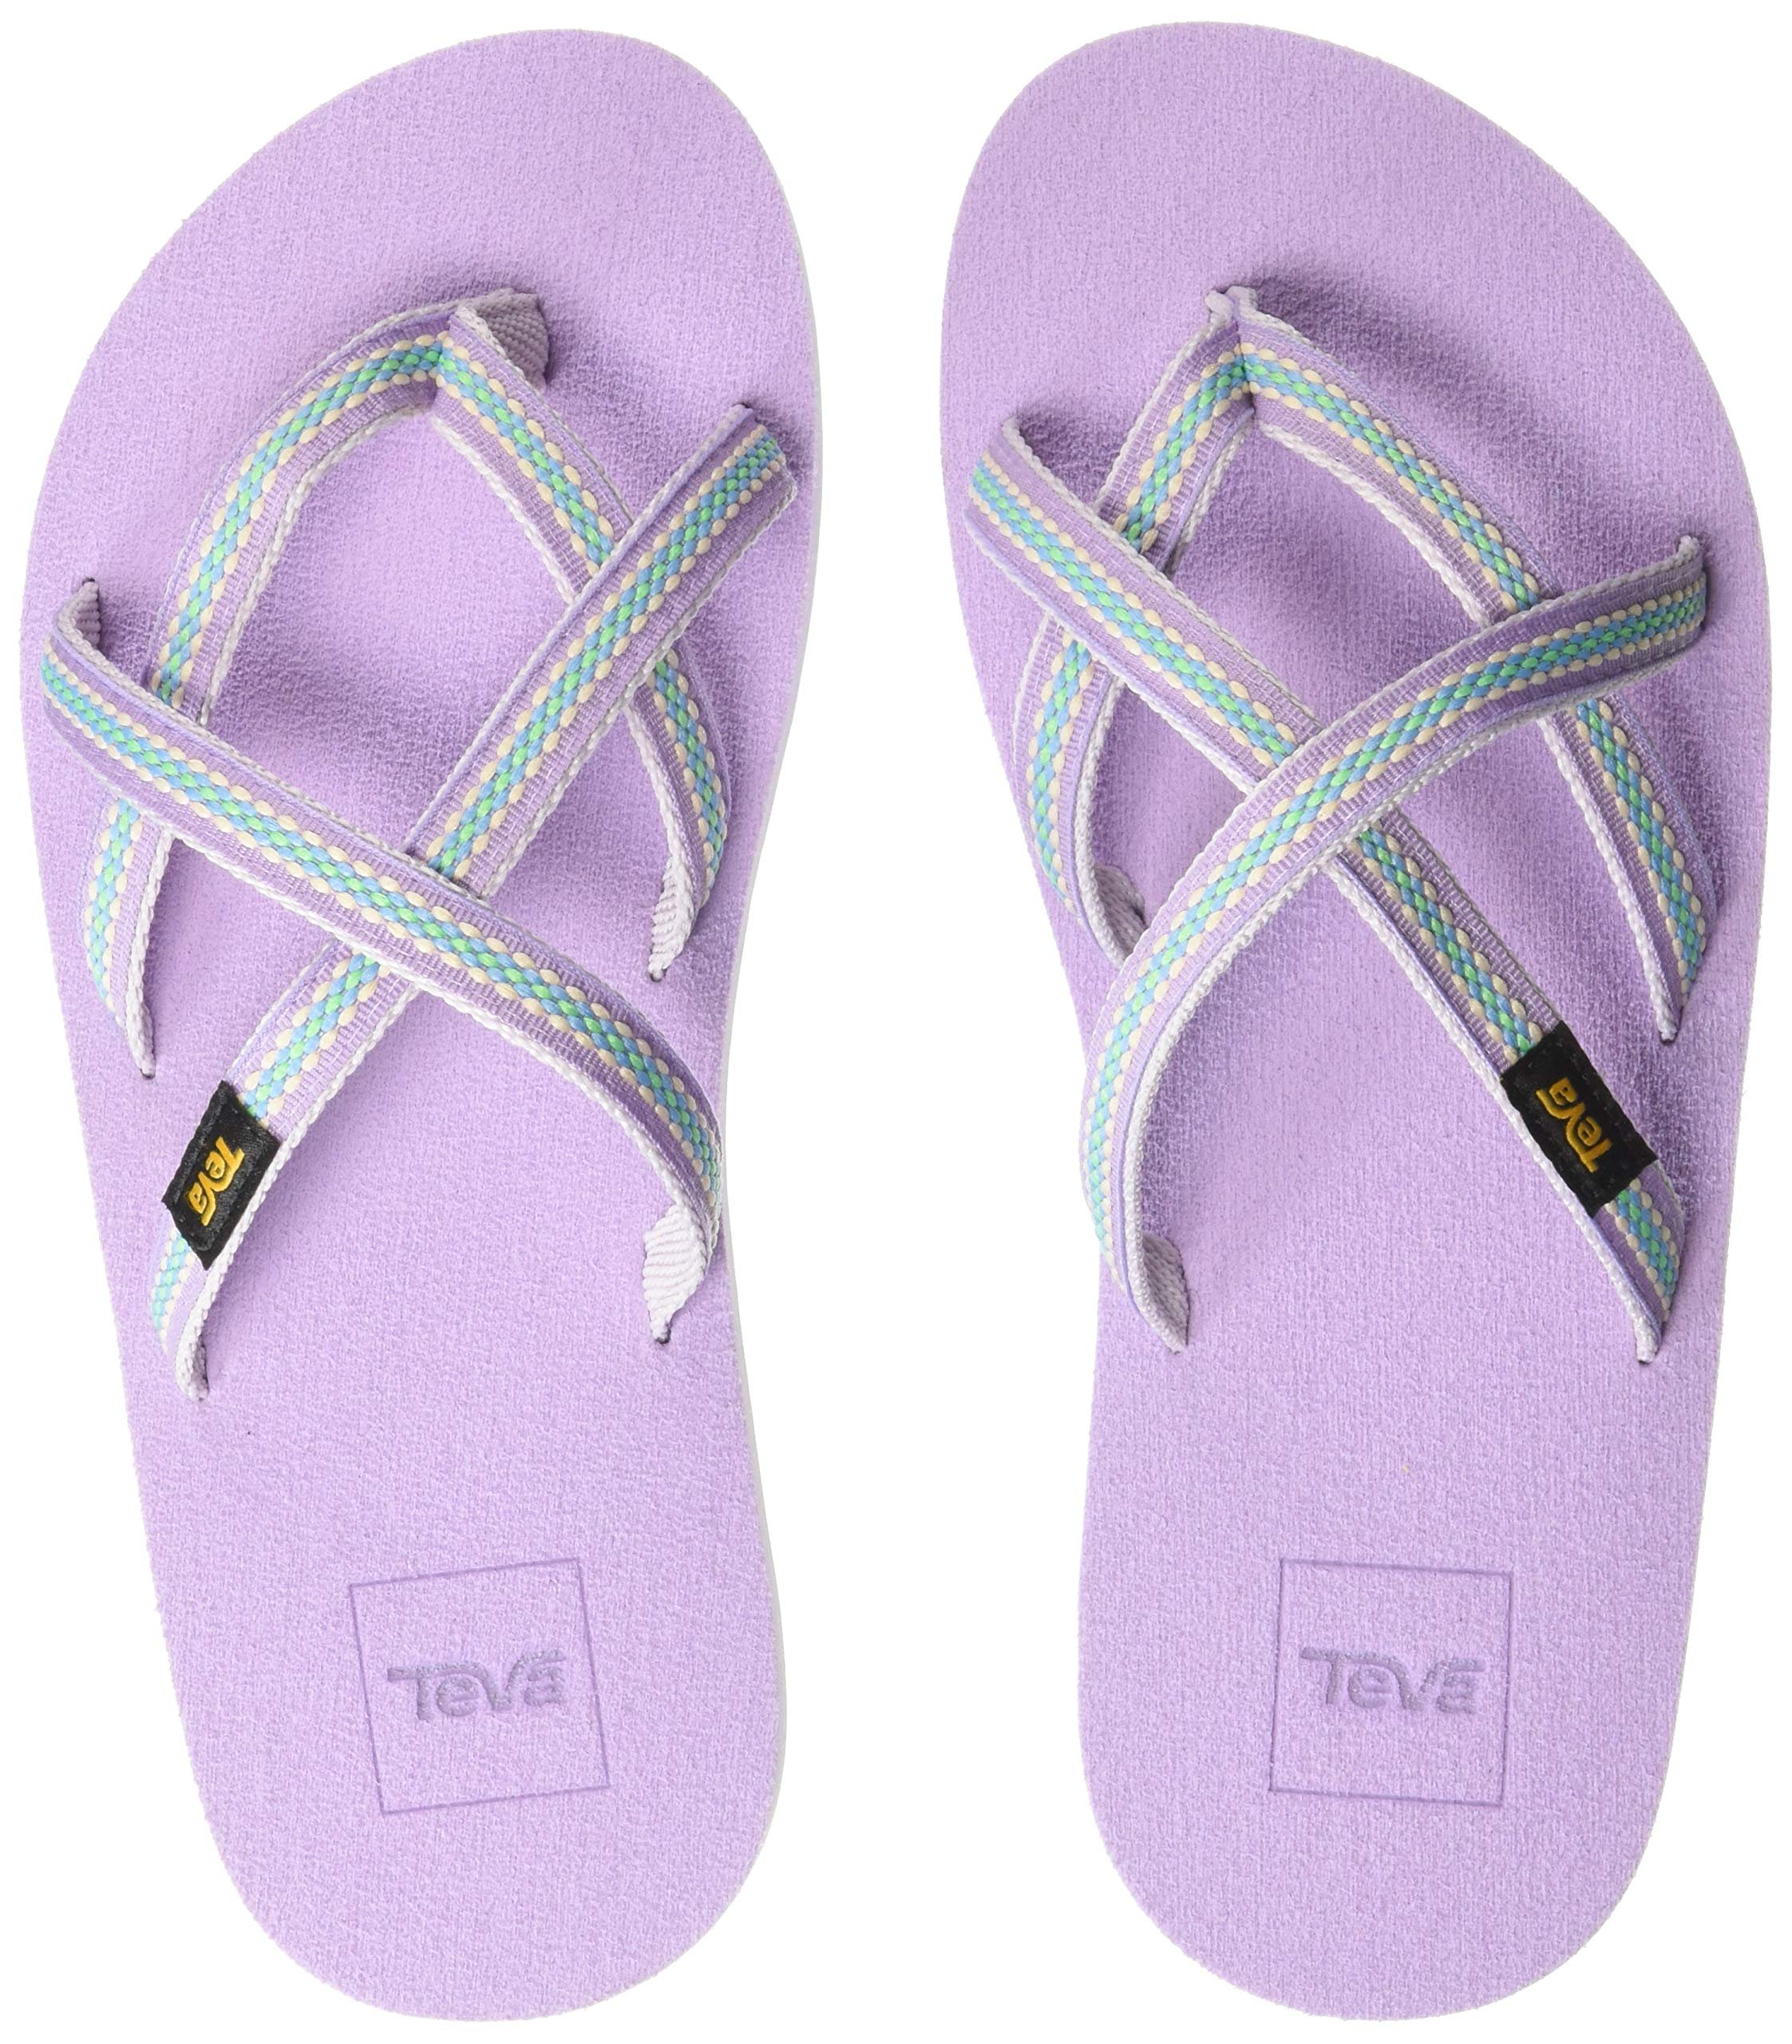 Teva Girls' Y Olowahu Sport Sandal, Lindi Orchid Bloom, 7 Medium US Big Kid by Teva (Image #1)